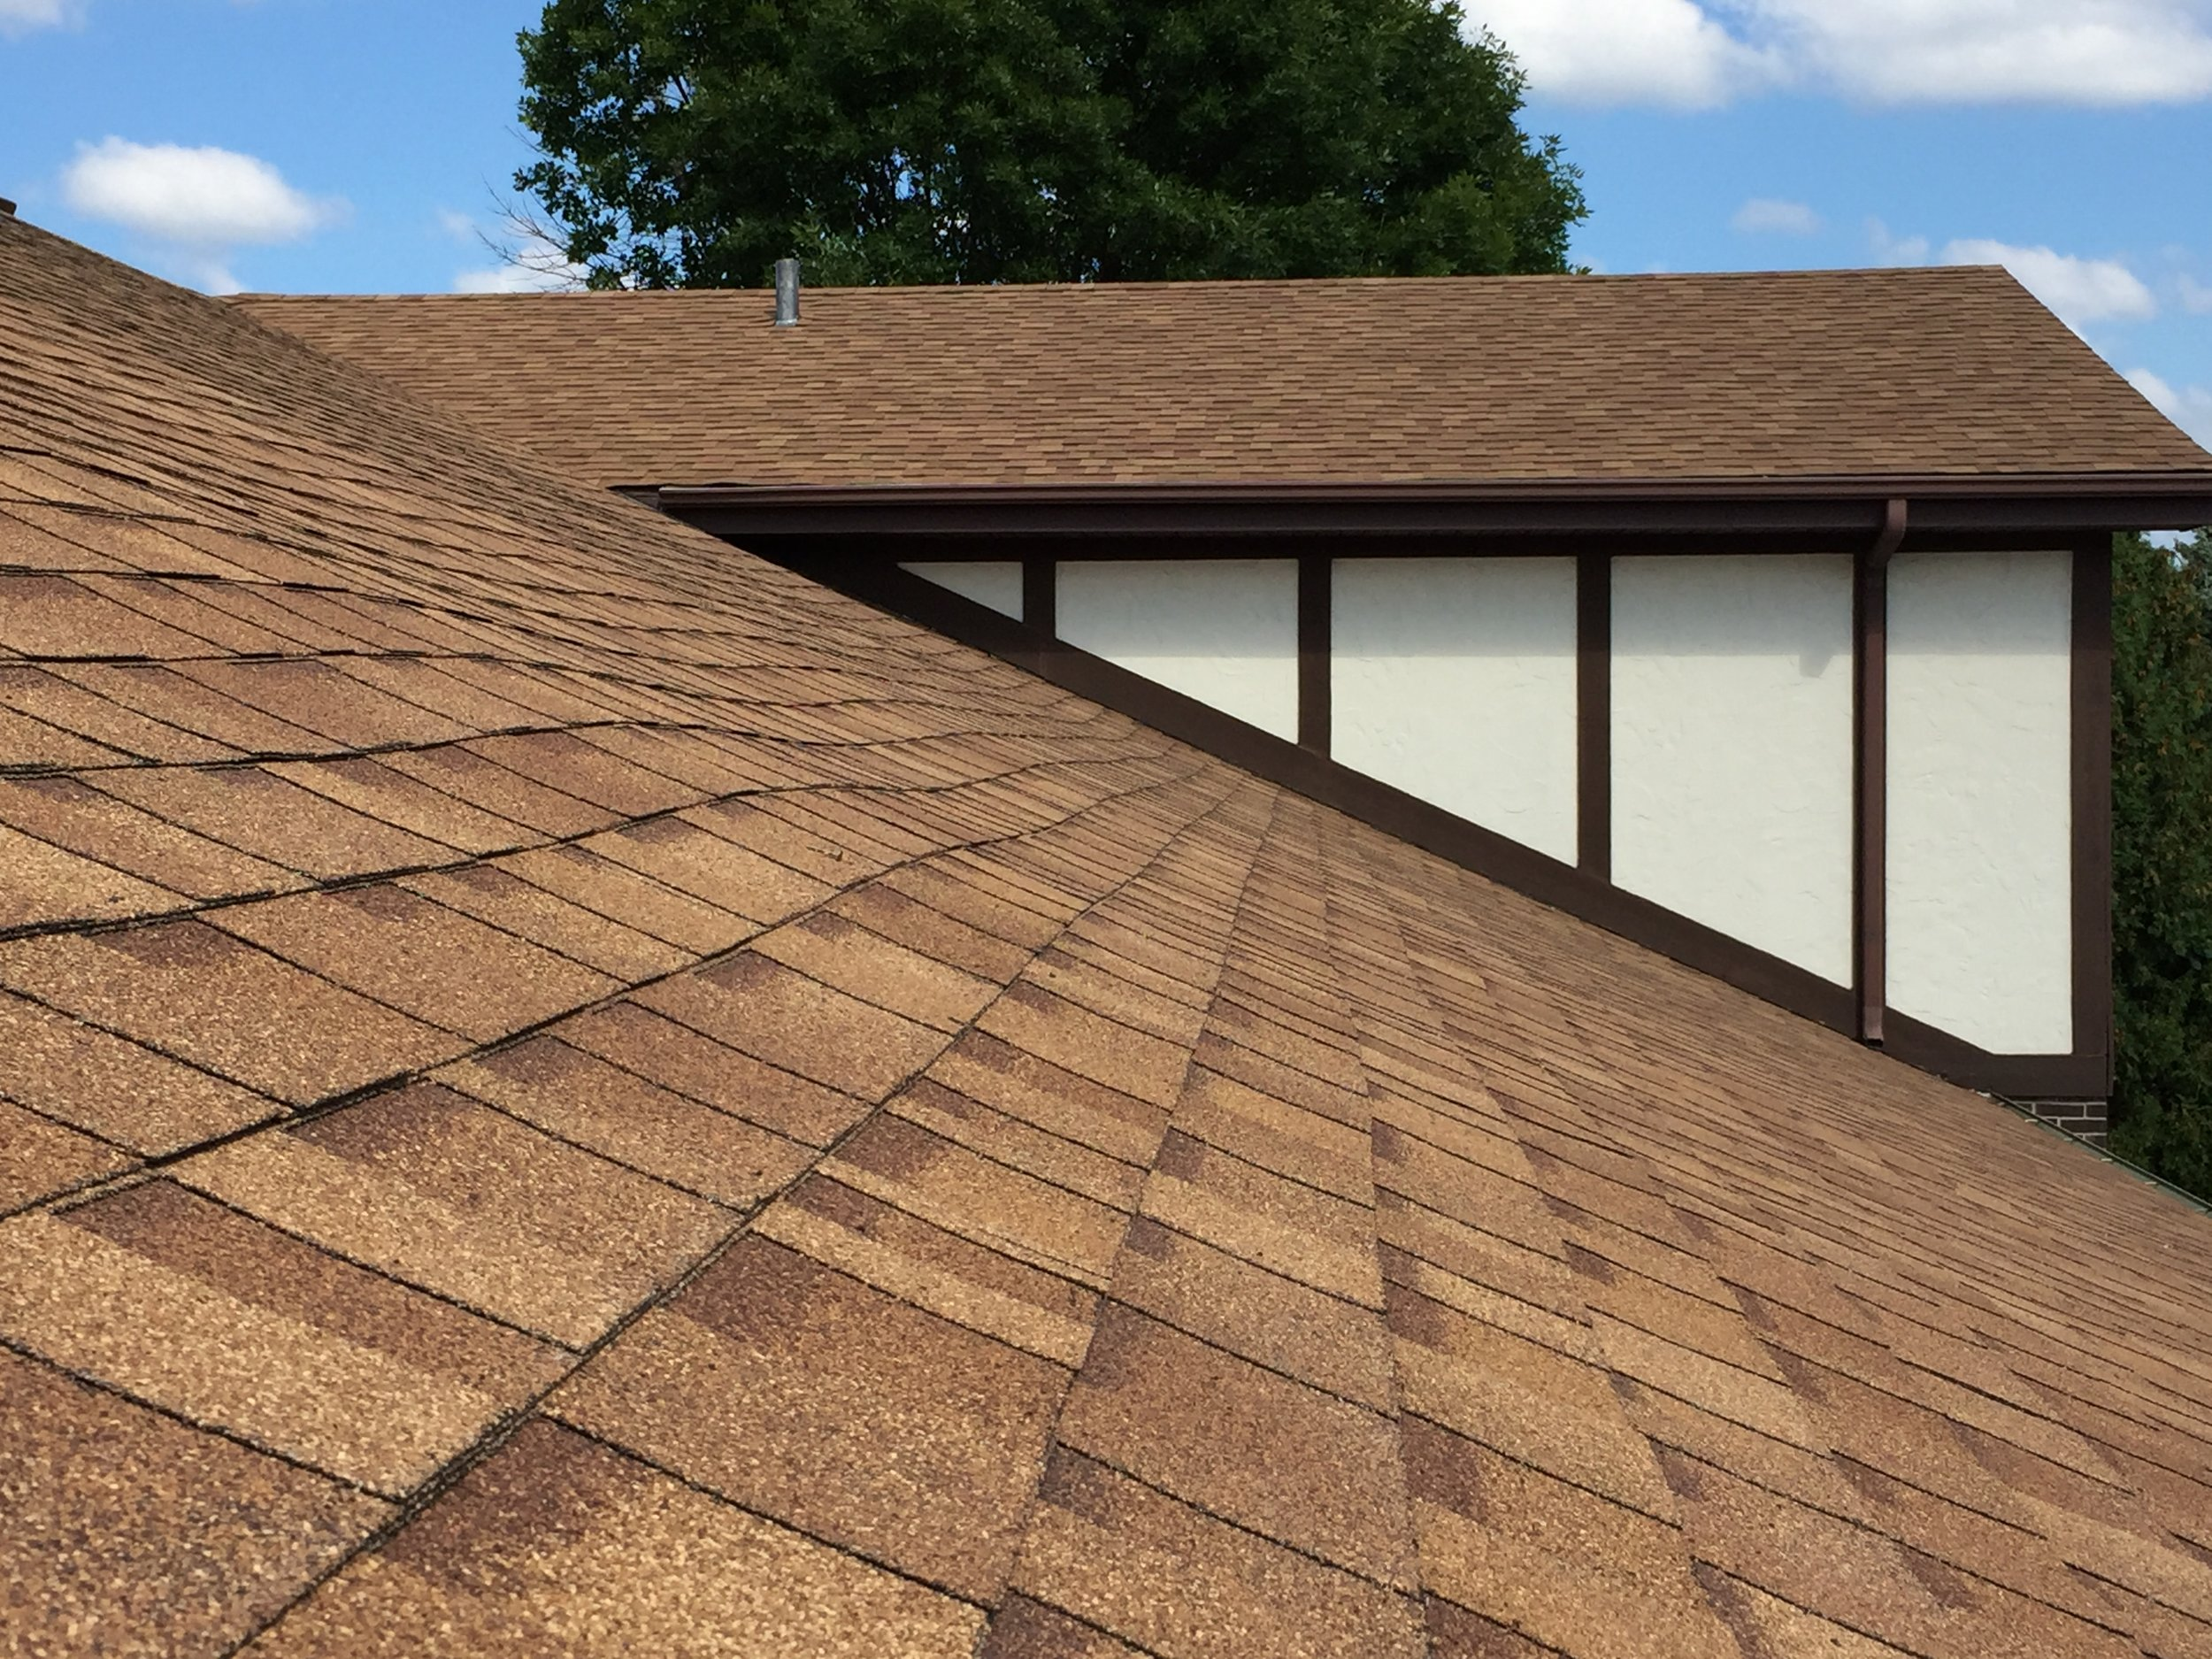 artex-roofing-best-roofing-replacement-tinley-park.jpg